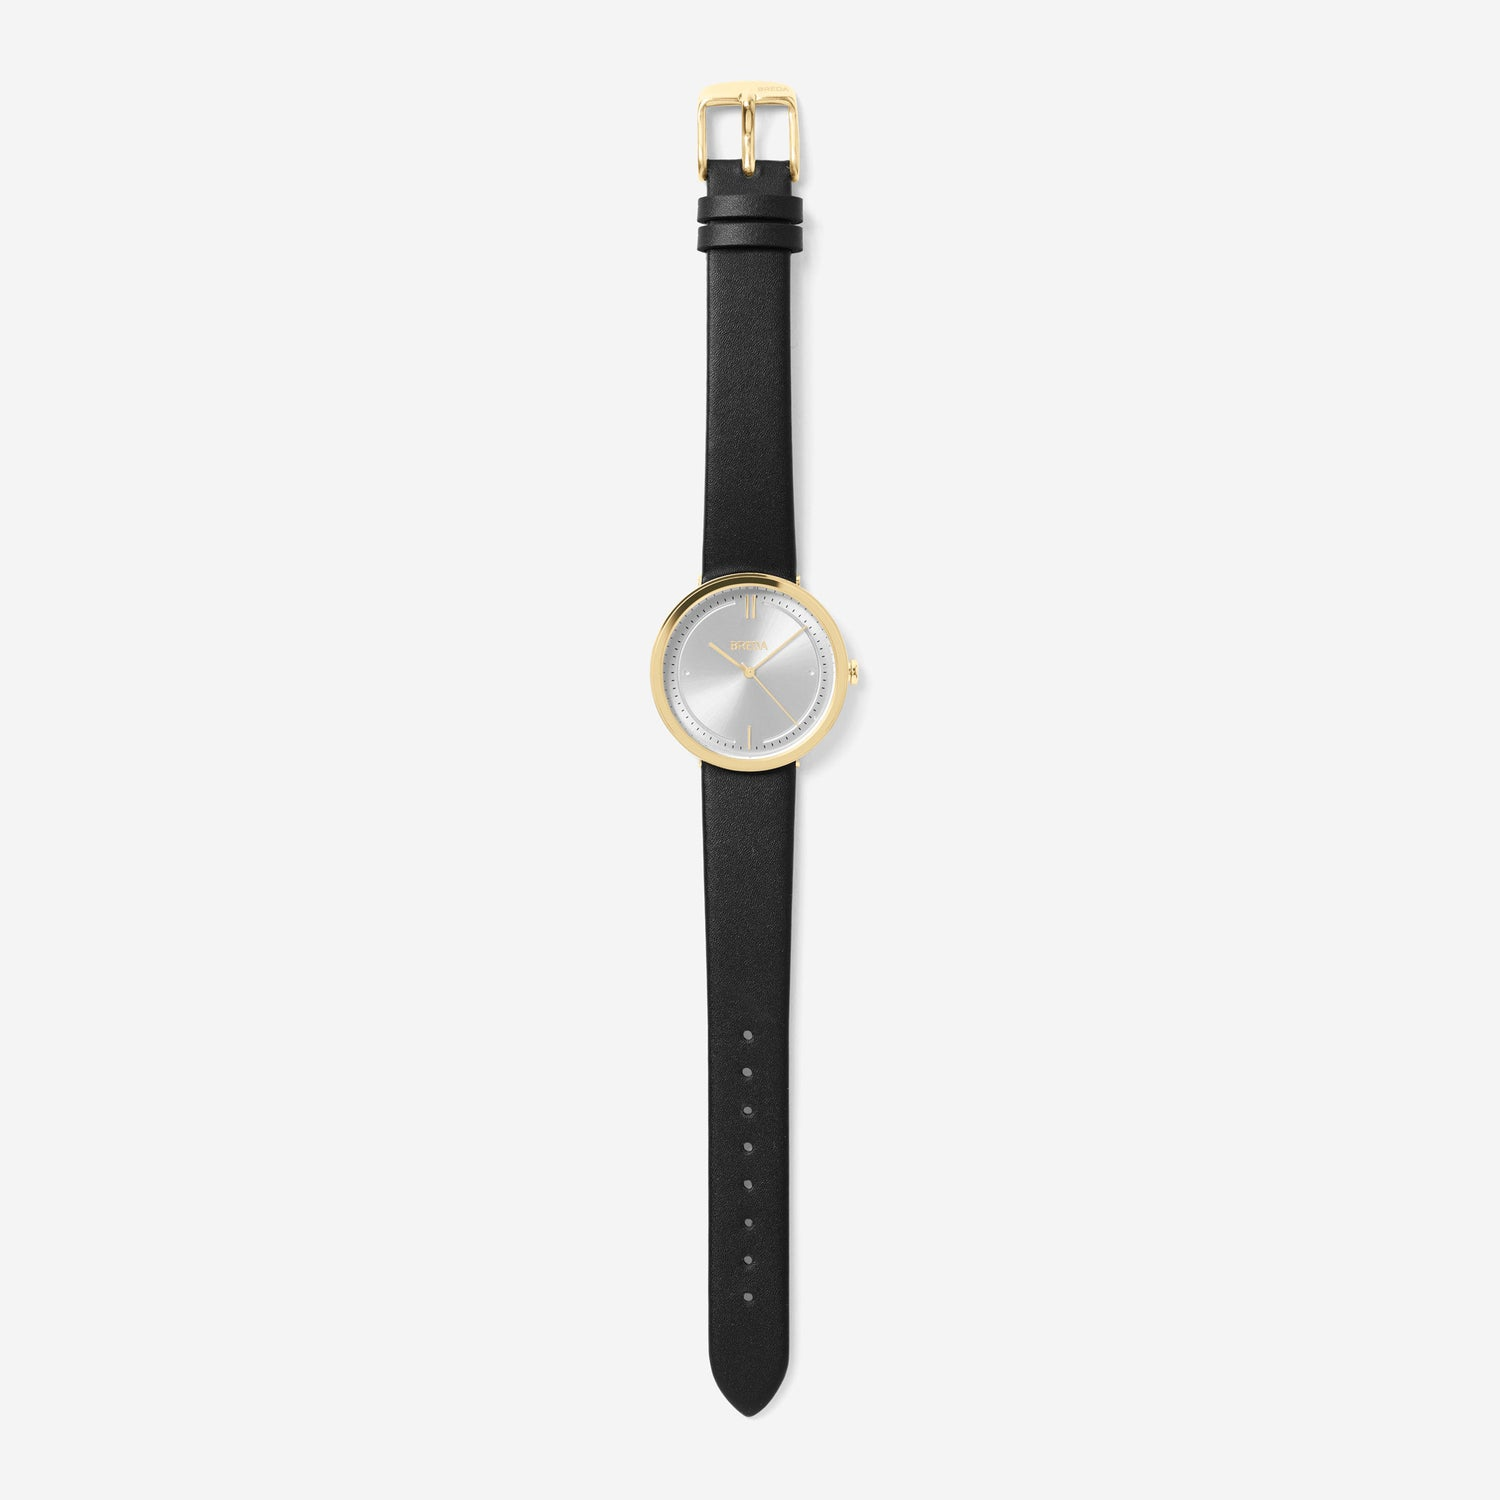 breda-agnes-1733a-gold-black-leather-watch-long